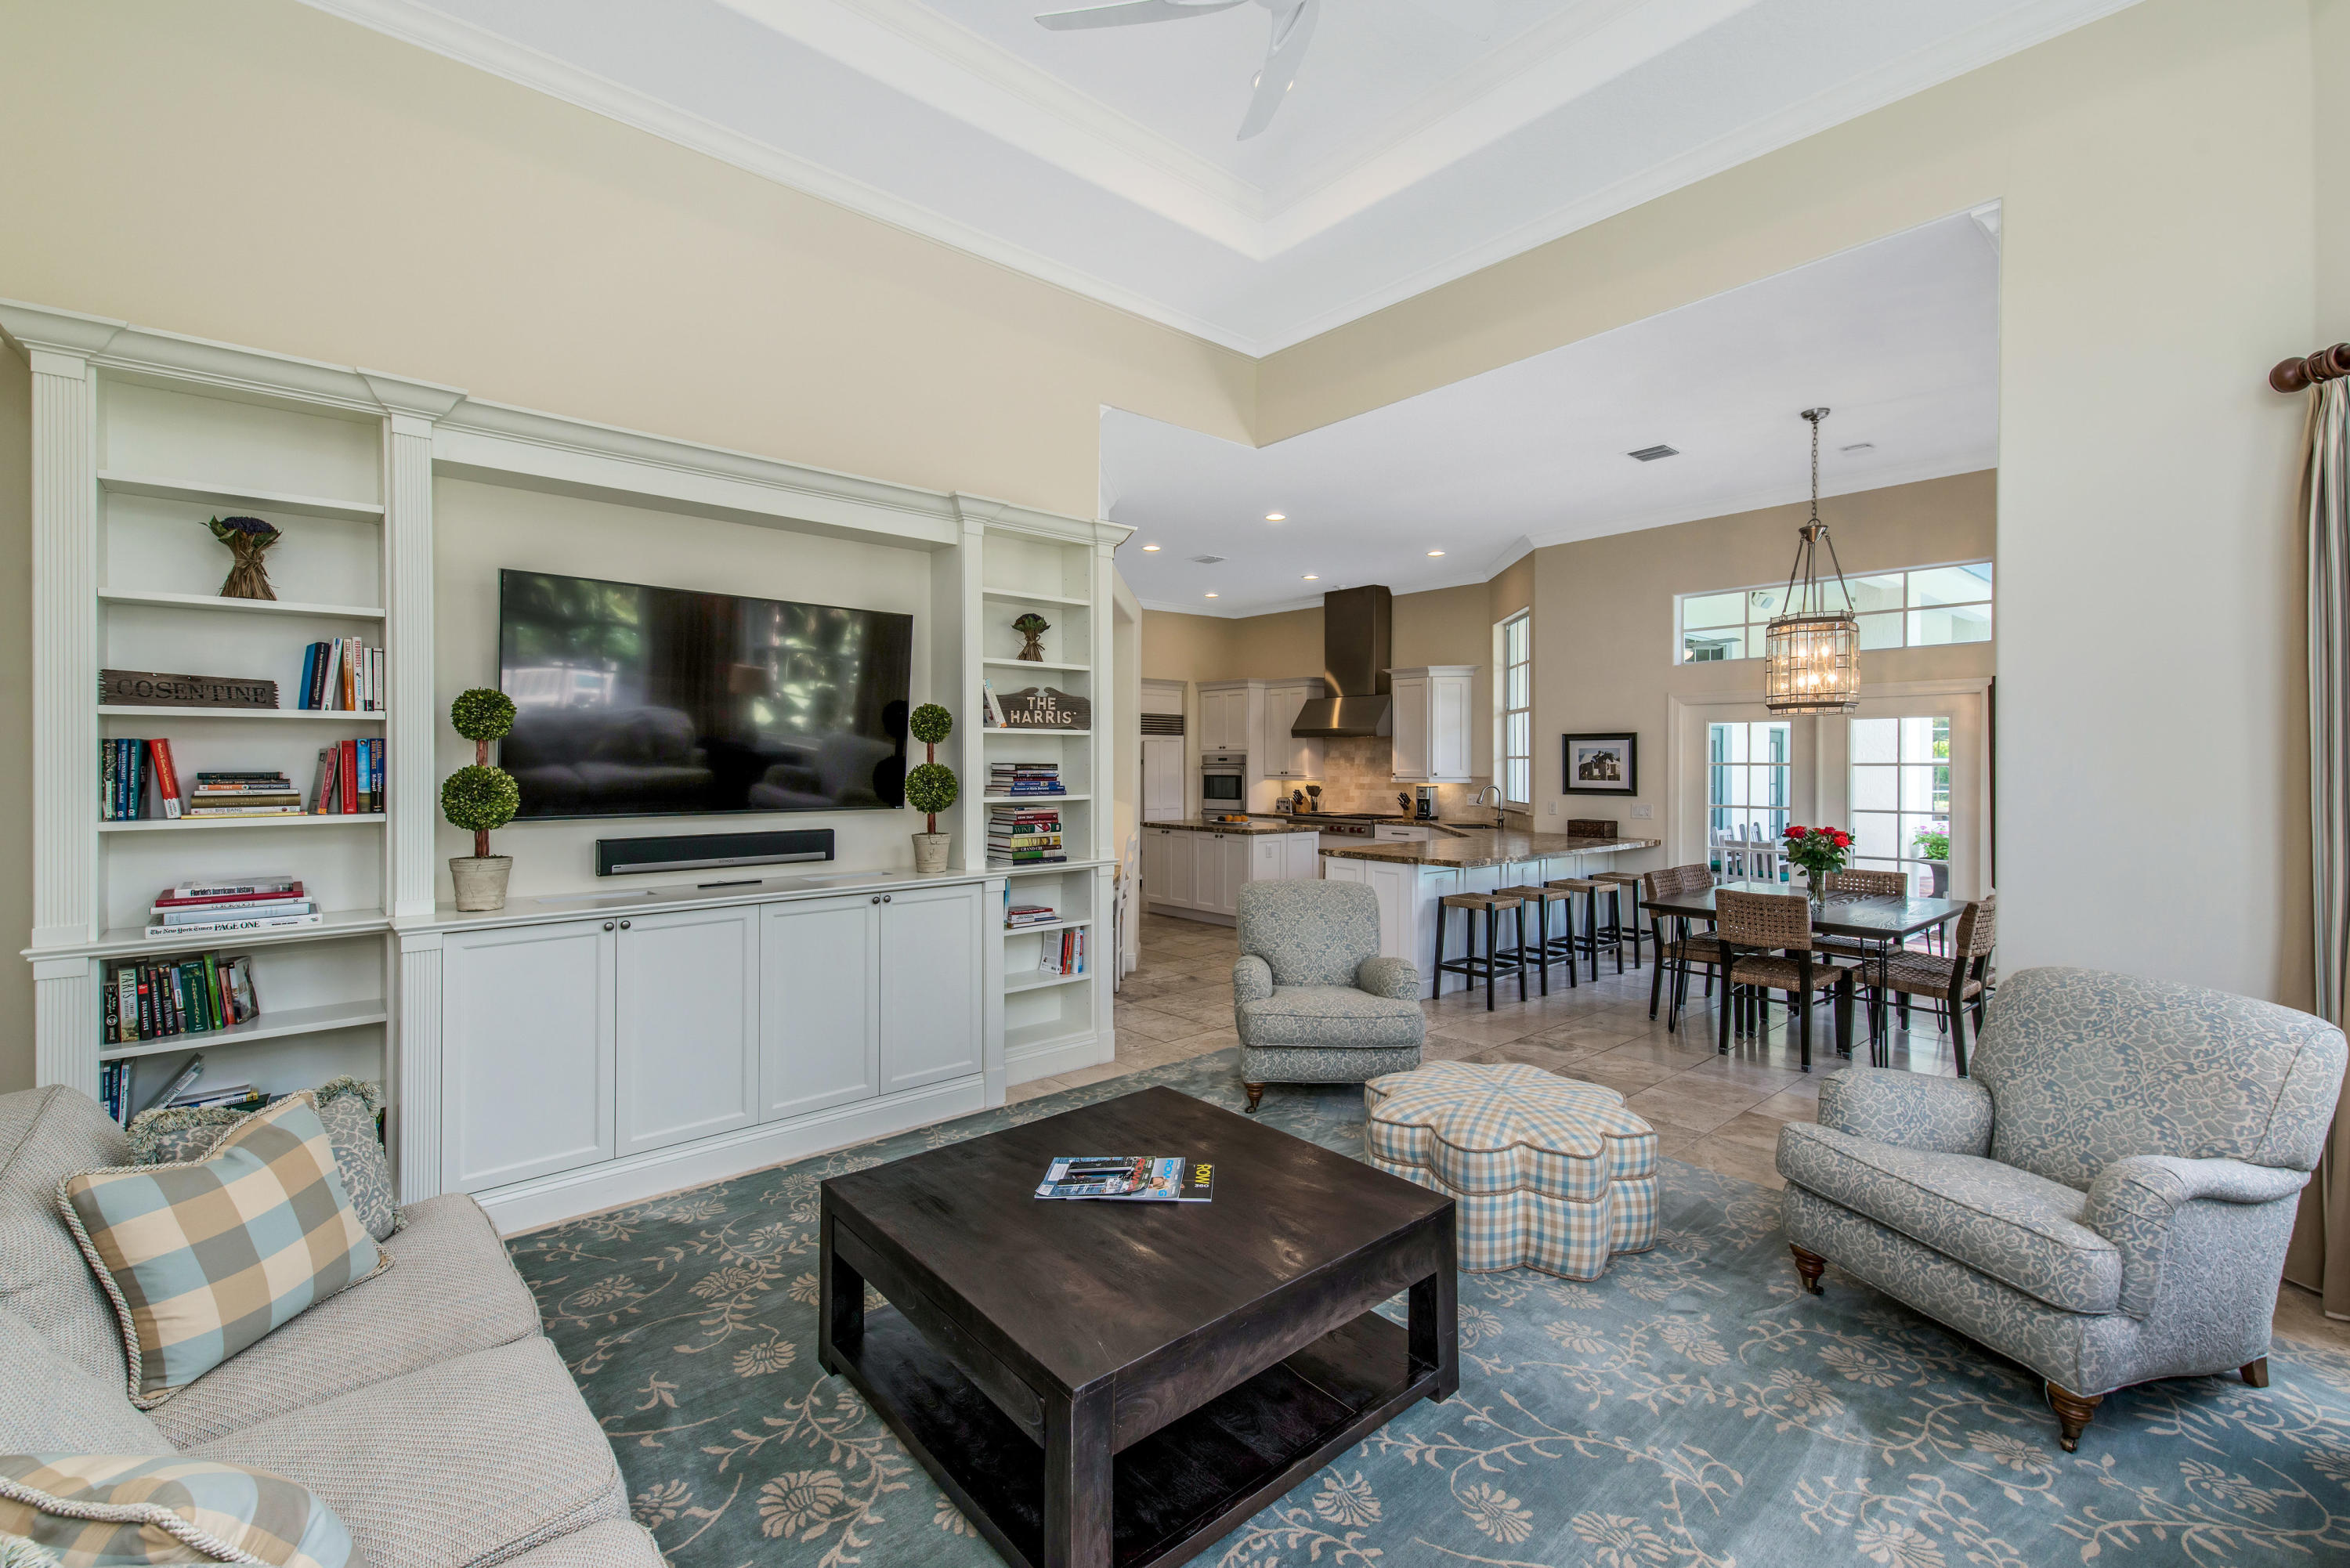 14399 Rolling Rock Place, Wellington, Florida 33414, 4 Bedrooms Bedrooms, ,4 BathroomsBathrooms,Single Family,For Sale,Saddle Trail,Rolling Rock,1,RX-10457396